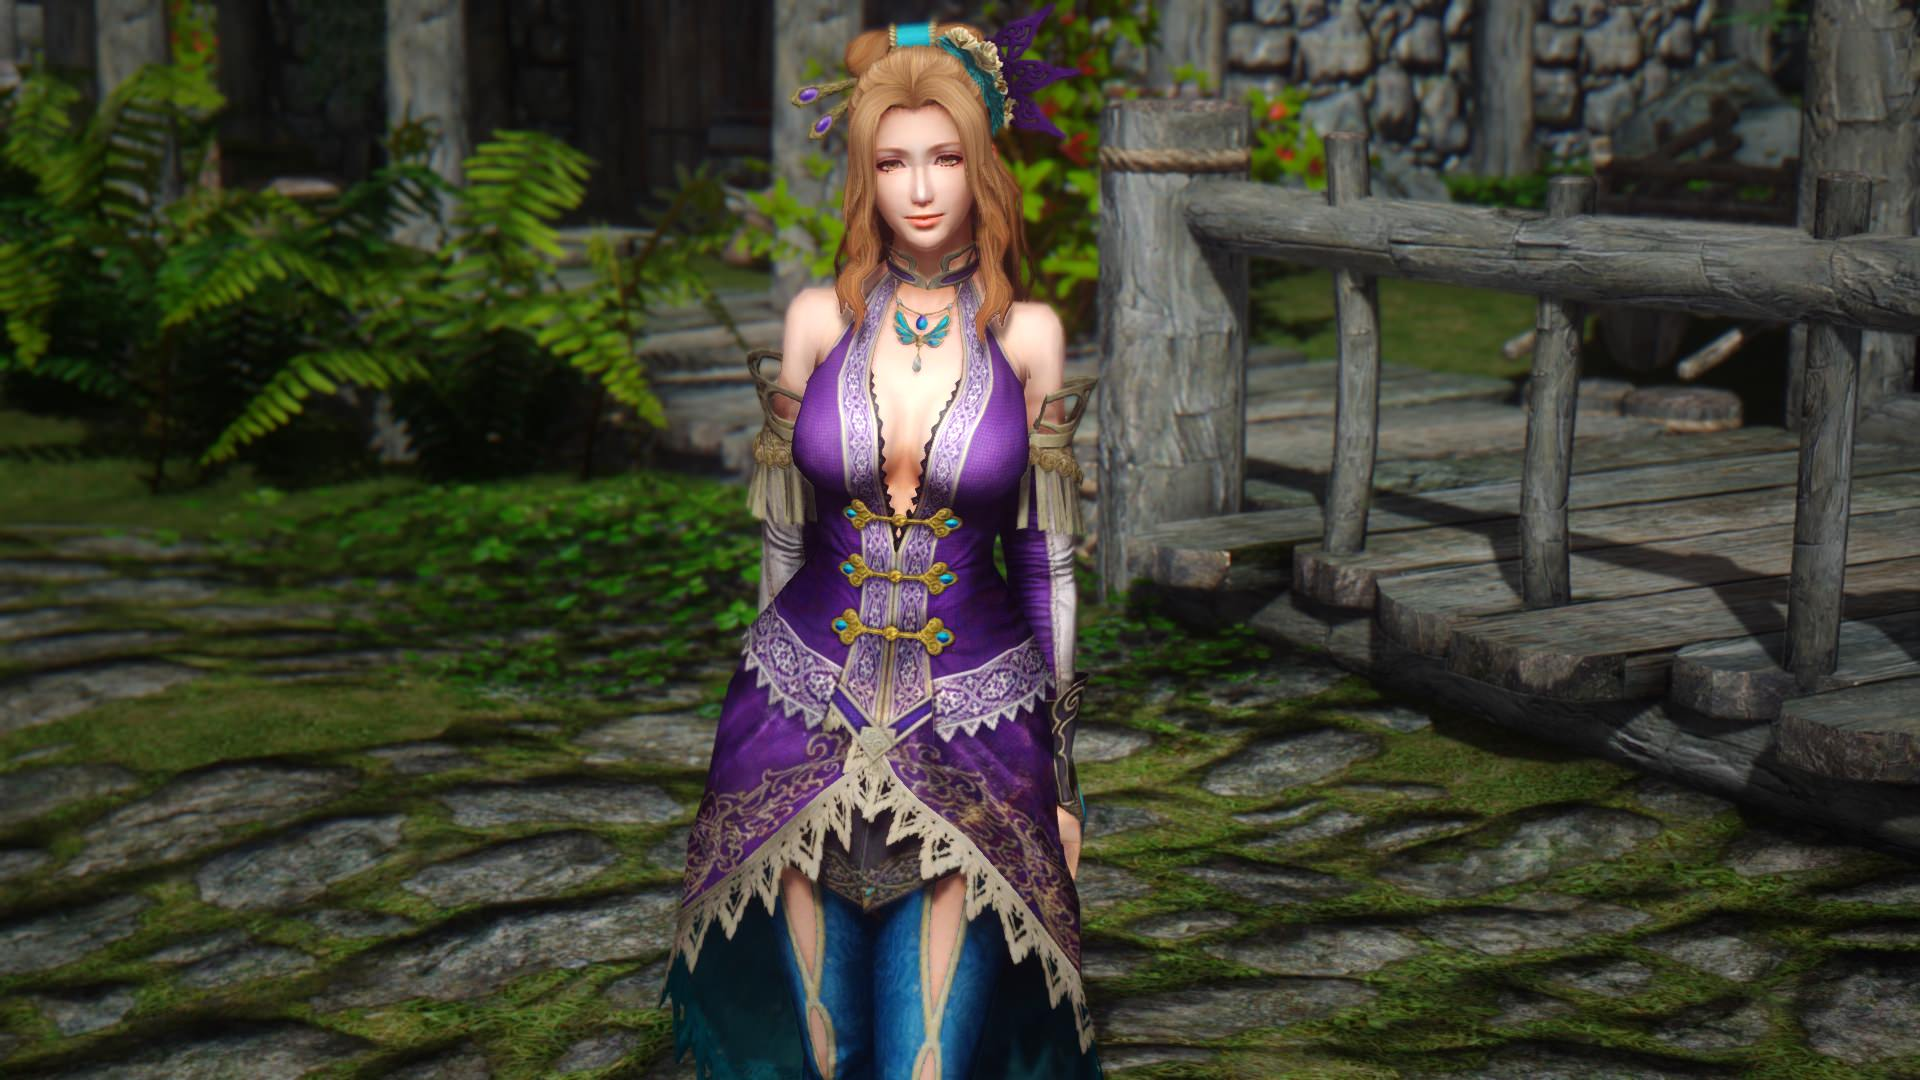 Dynasty warriors sex pic pron pic